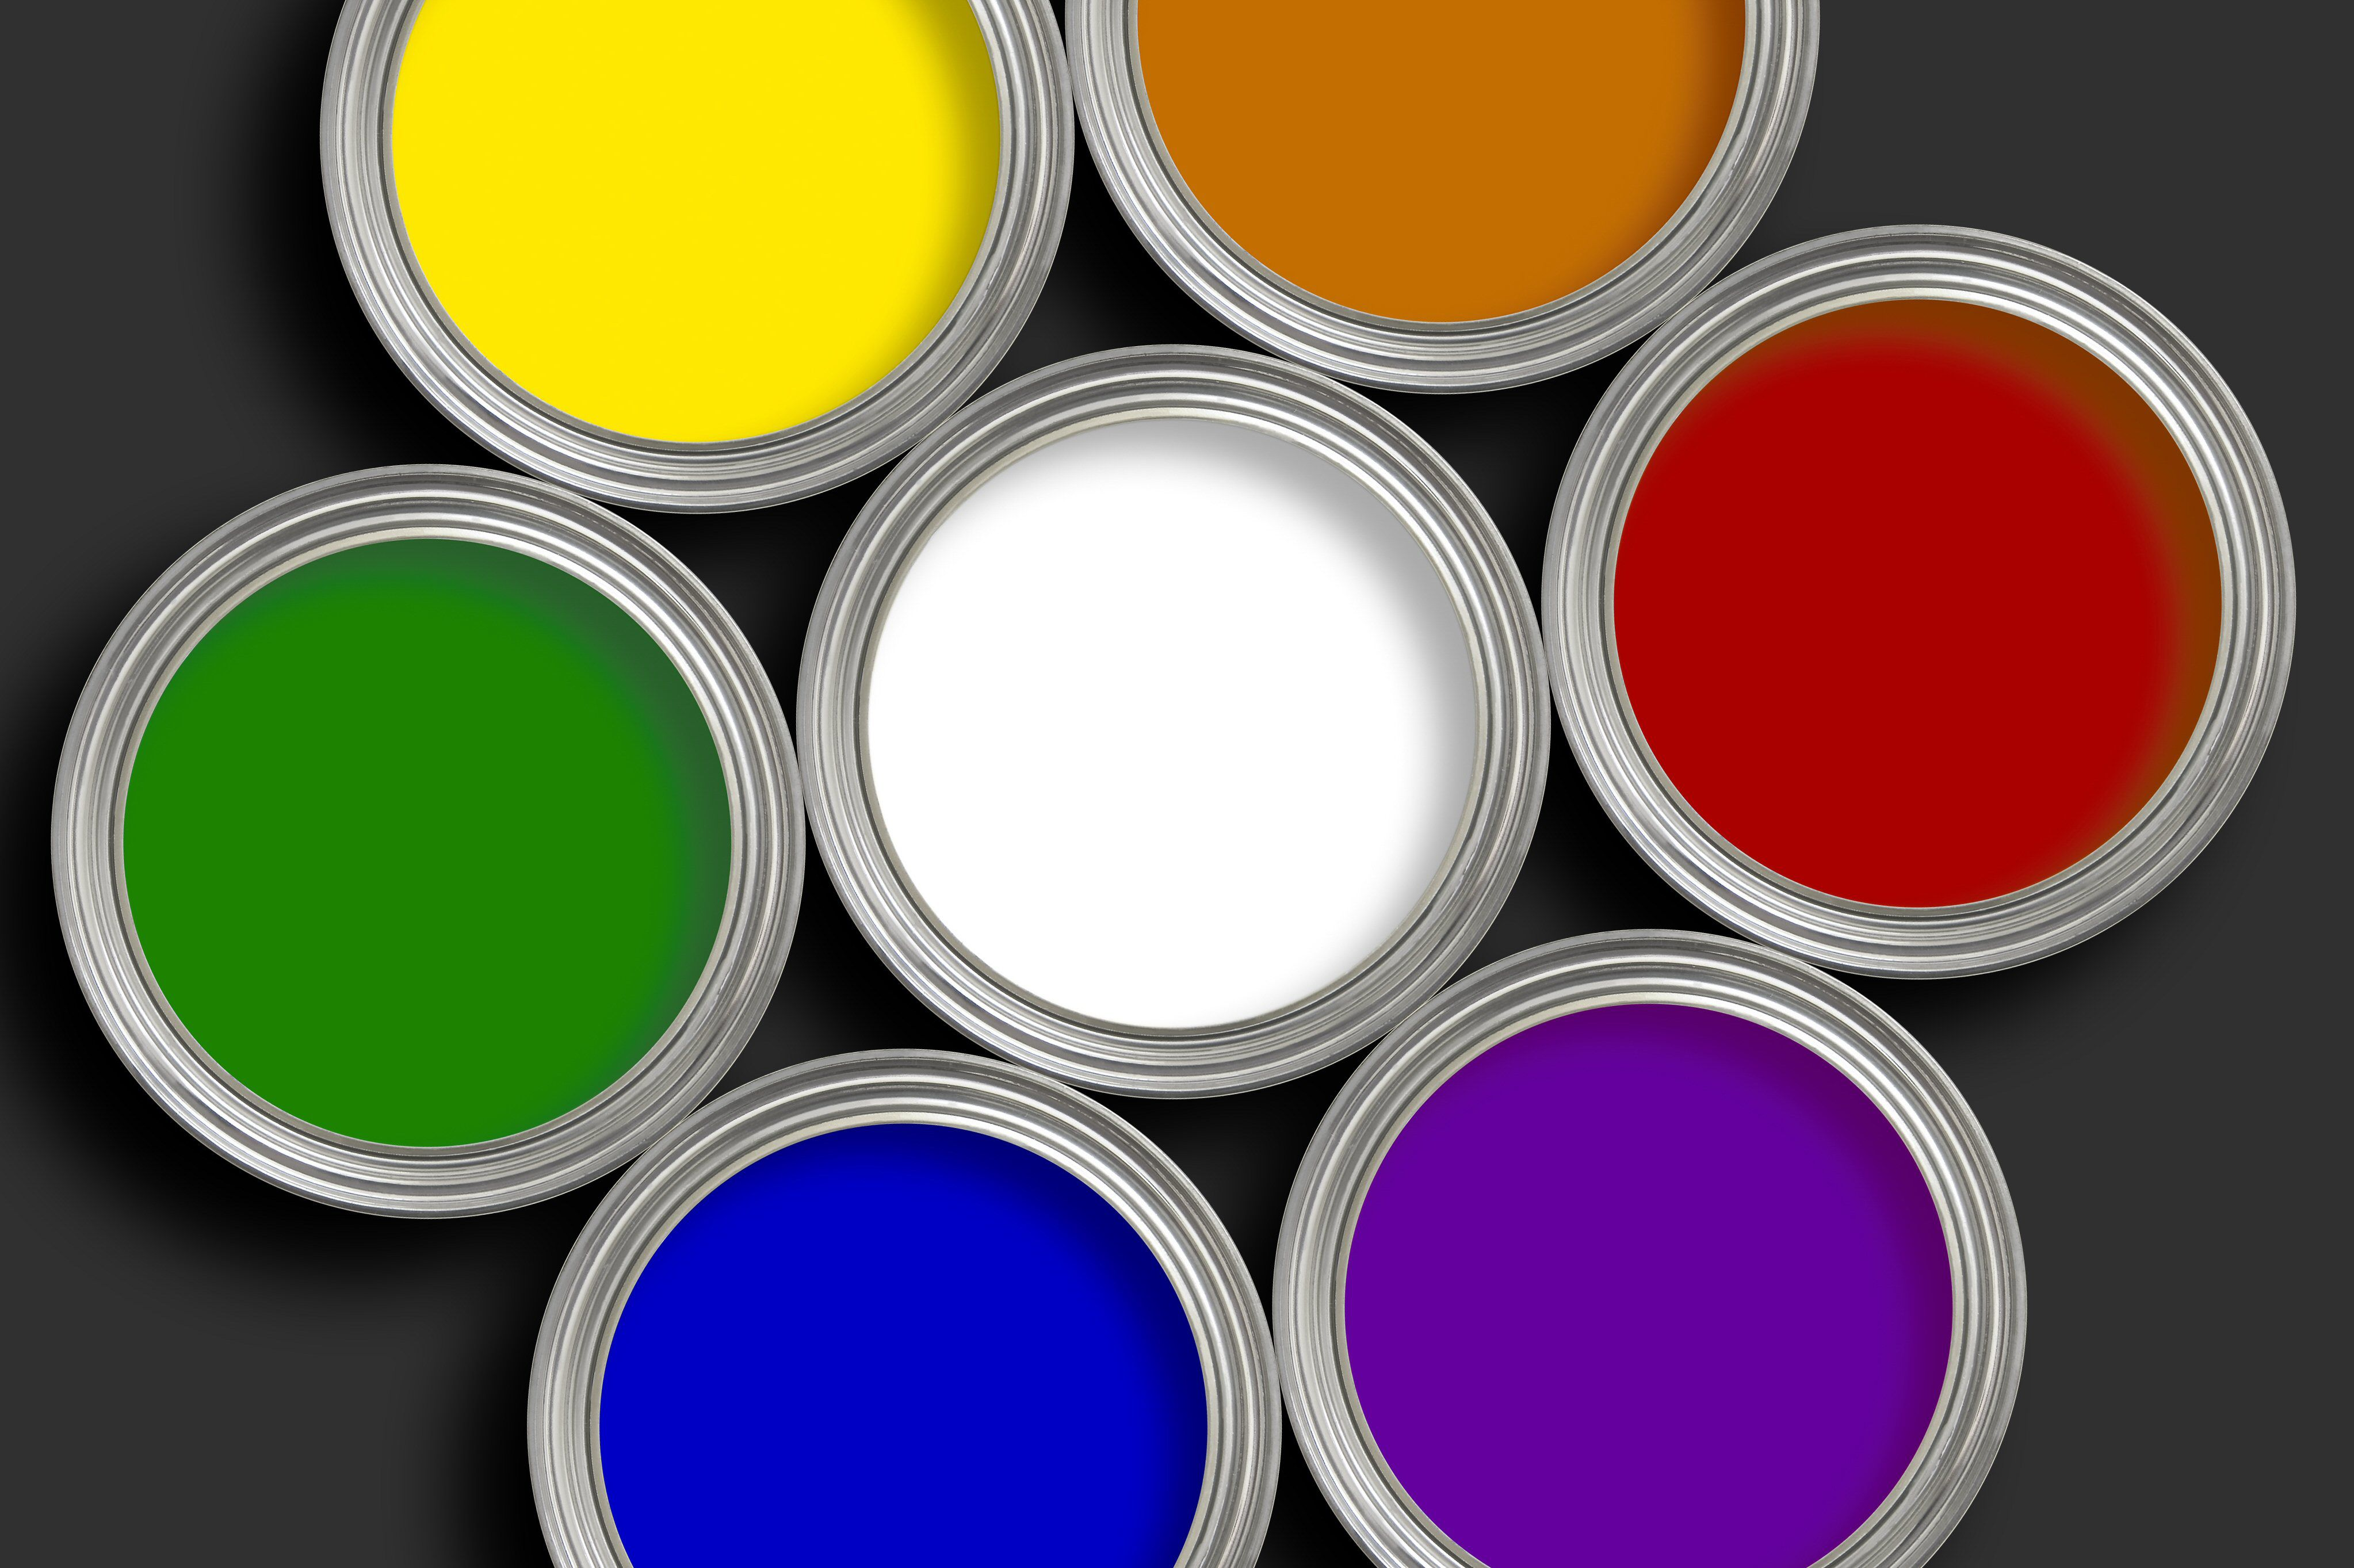 Viewing 7 Open Paint Cans From The Top In A Circle White